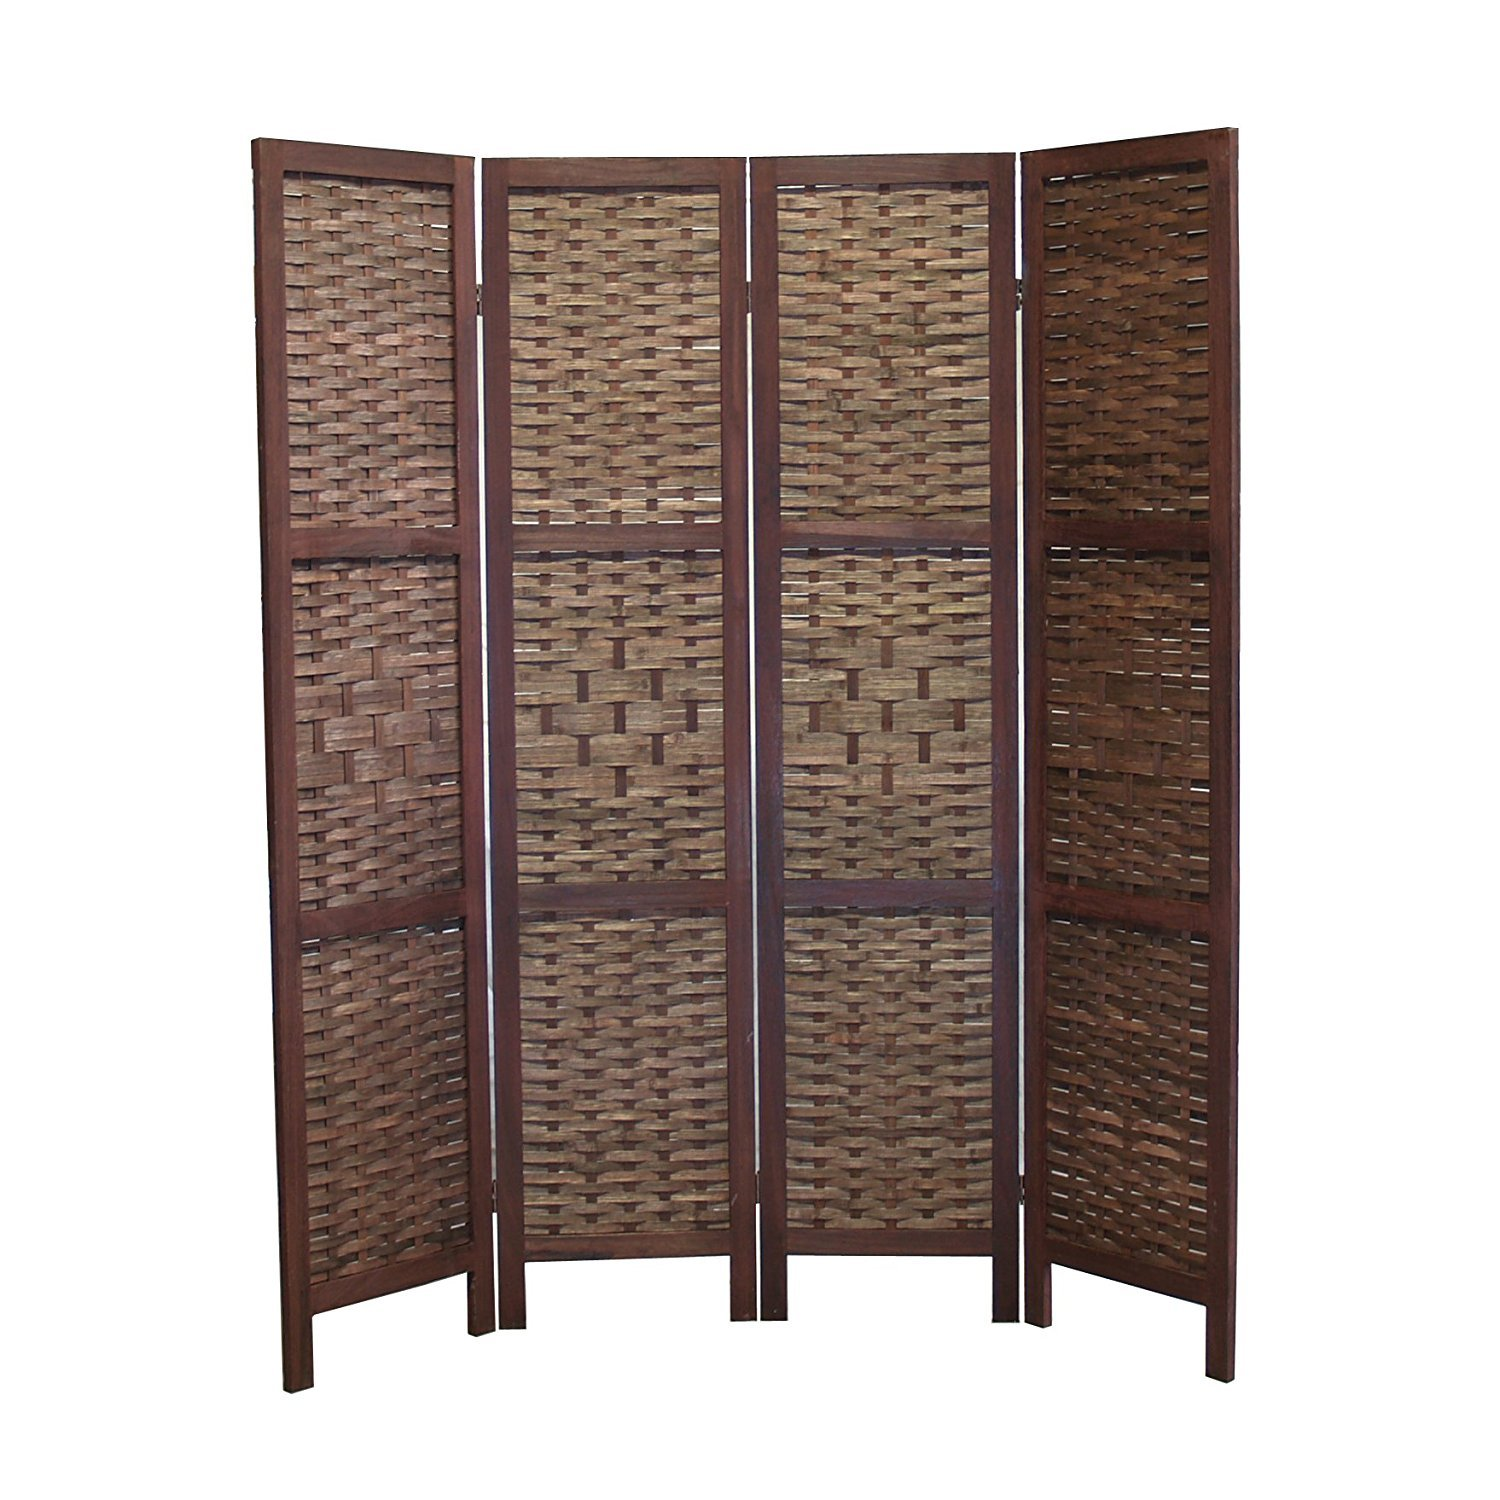 4 Panel Room Divider Folding Bamboo Indoor Furniture Screen Partition Home Decor